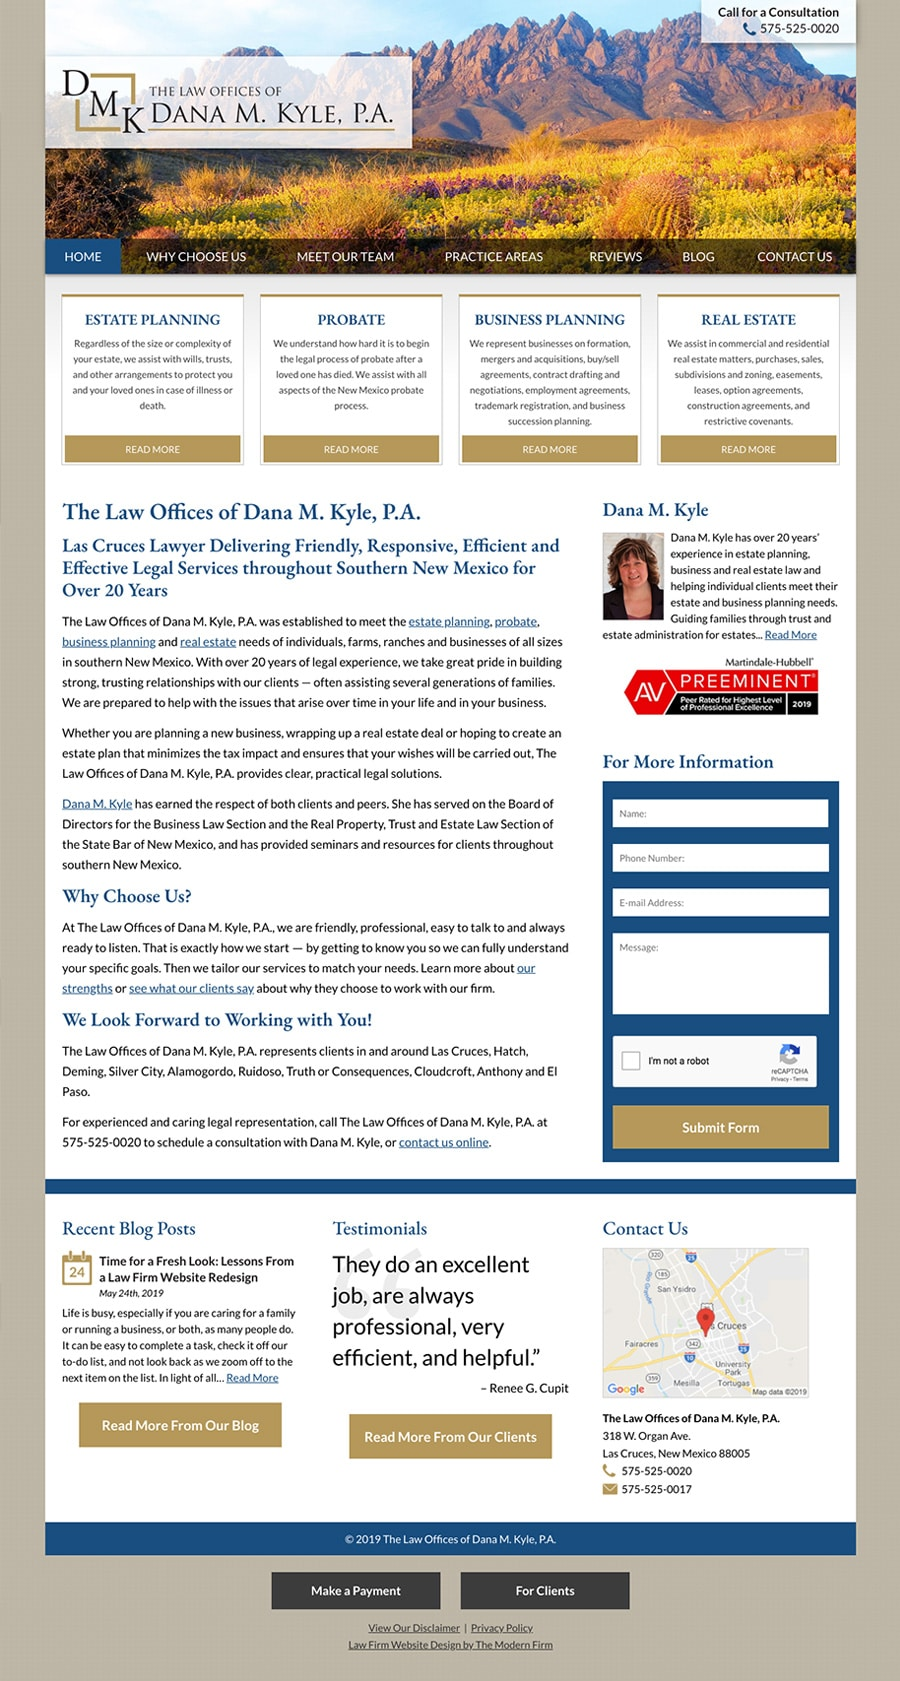 Law Firm Website Design for The Law Offices of Dana M. Kyle, P.A.